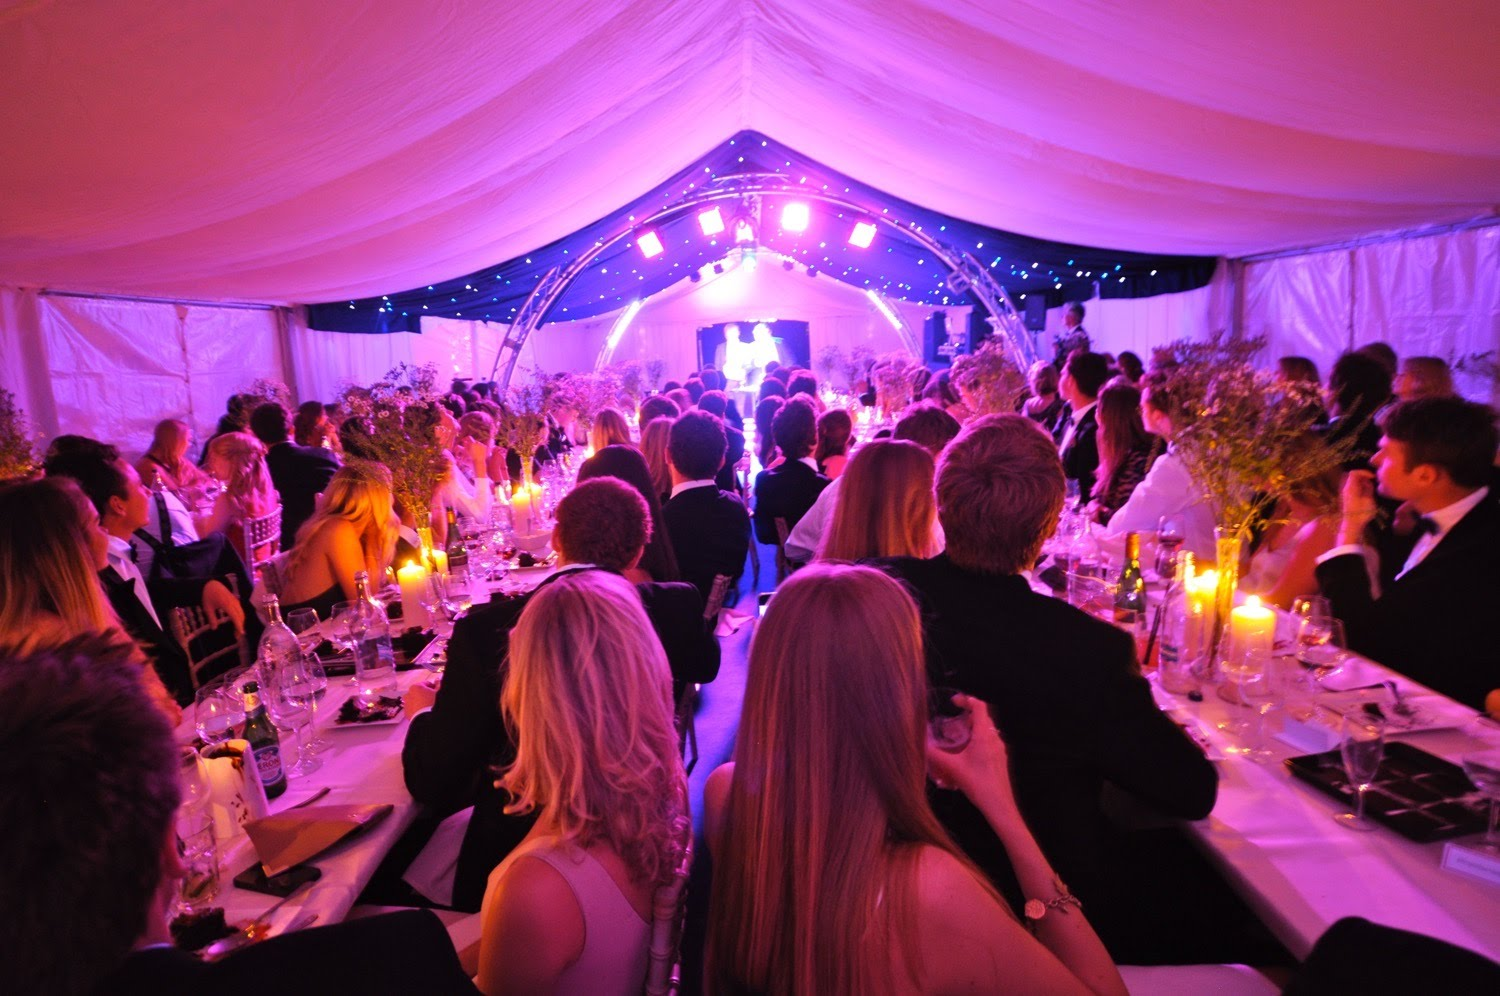 40th Party. Guests seated at tables inside a marquee